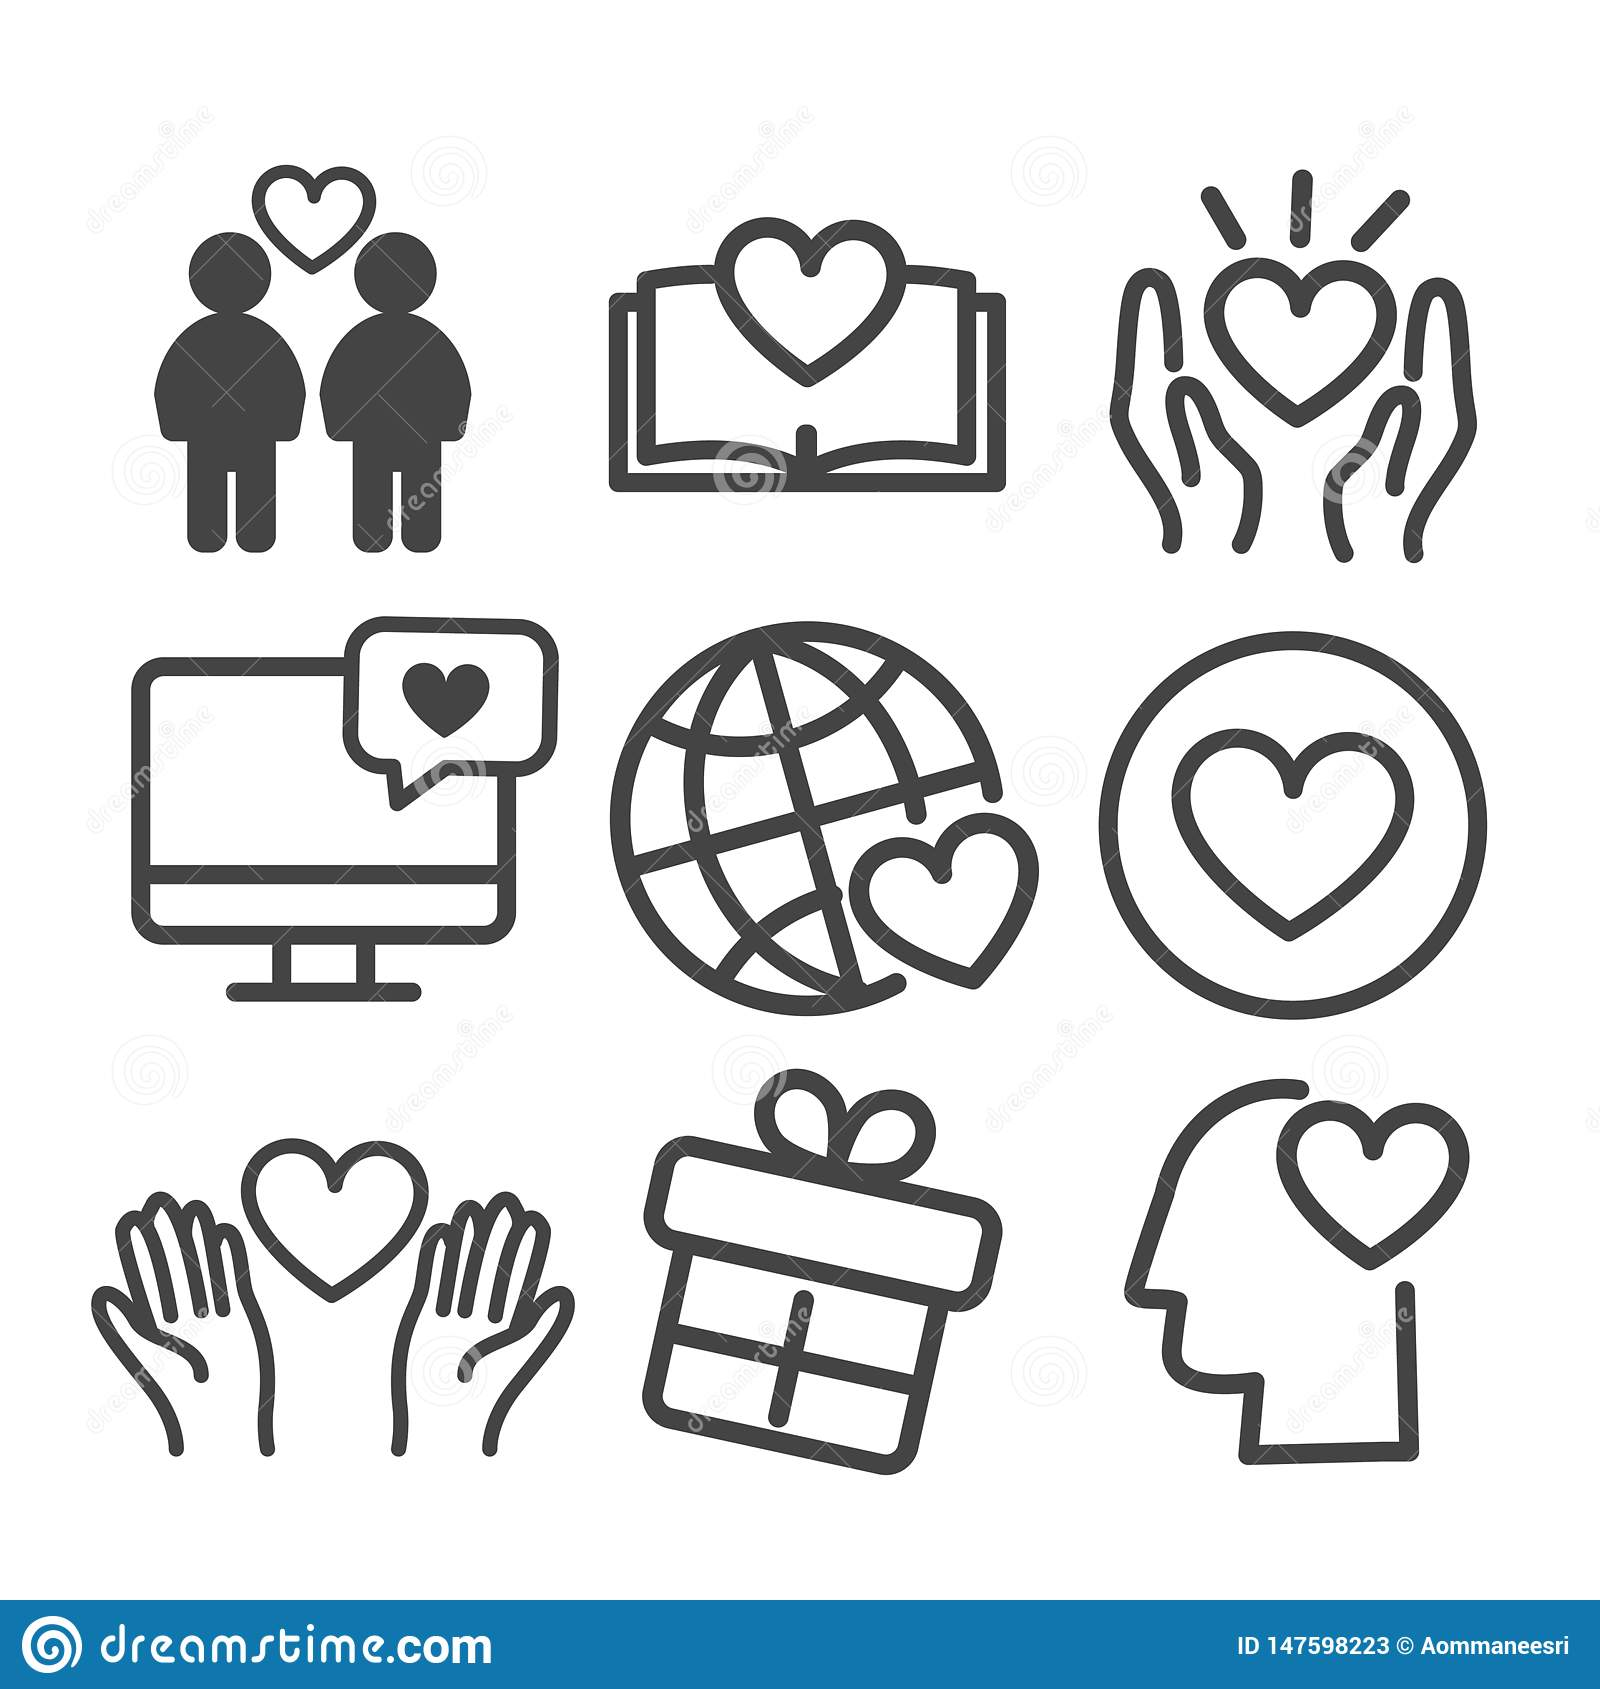 Love icon set isolated. Modern outline on white background